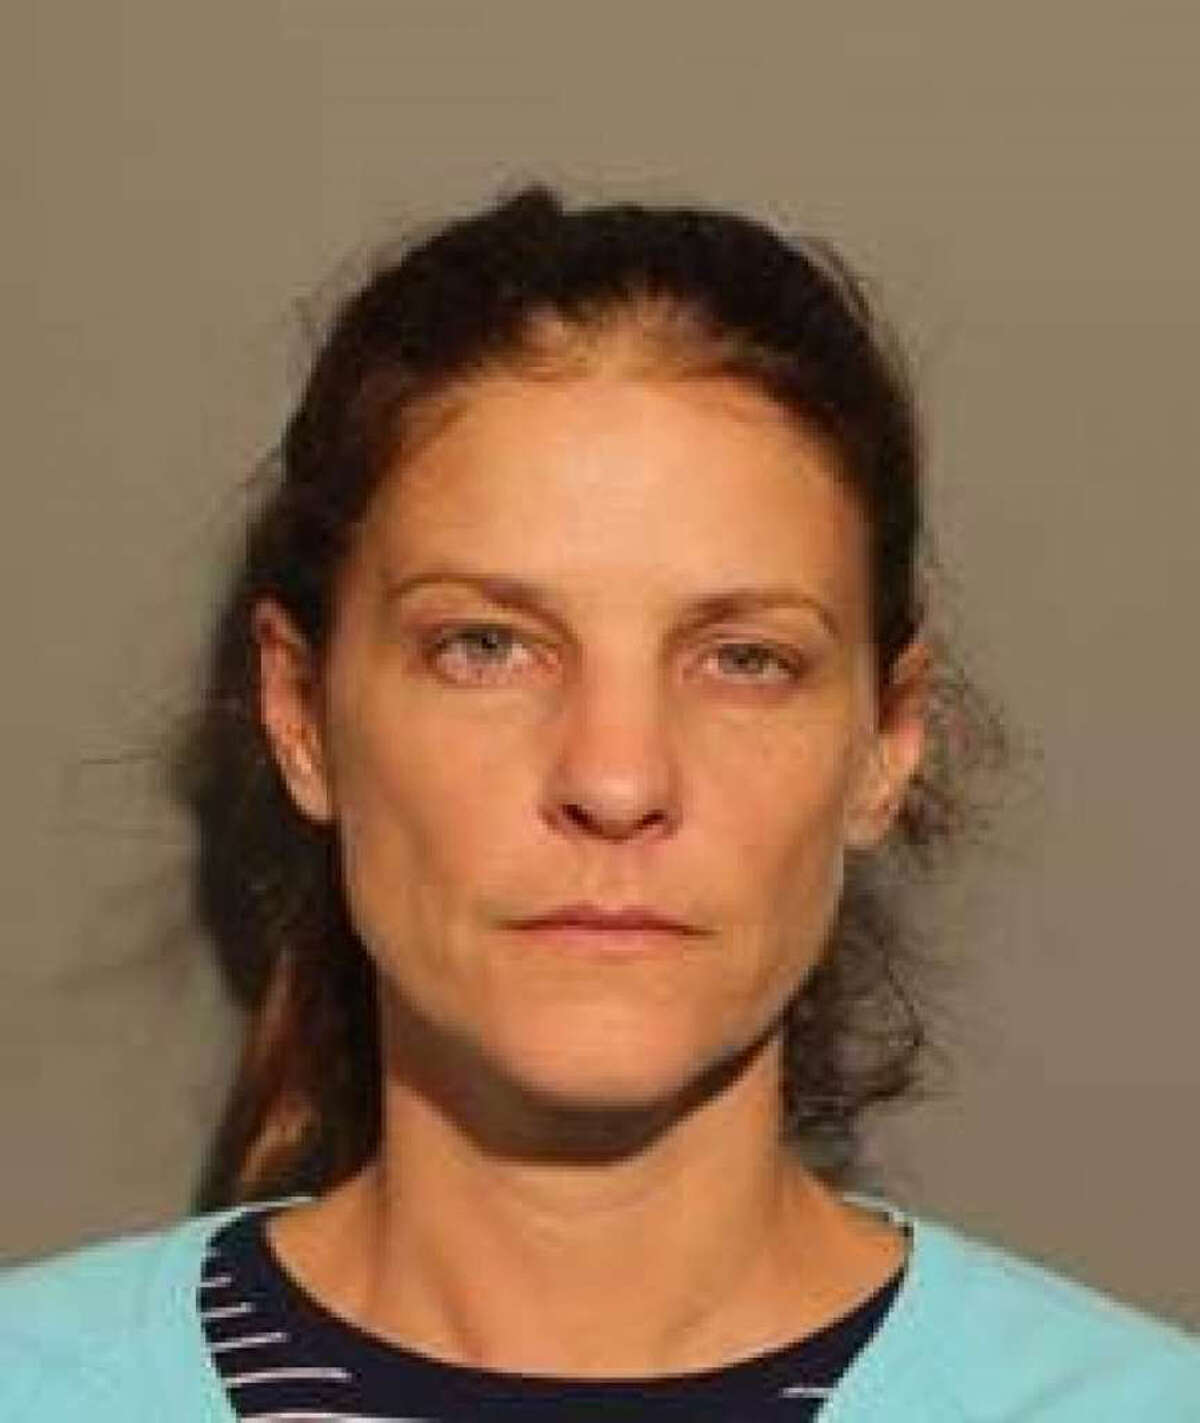 Michelle C. Troconis, 44, was arrested in connection with the disappearance of Jennifer Dulos, a New Canaan mother of five. Troconis, the girlfriend of Jennifer Dulos' estranged husband, was charged with tampering with or fabricating physical evidence and hindering prosecution in the first degree. Photo: Contributed Photo / New Canaan Police